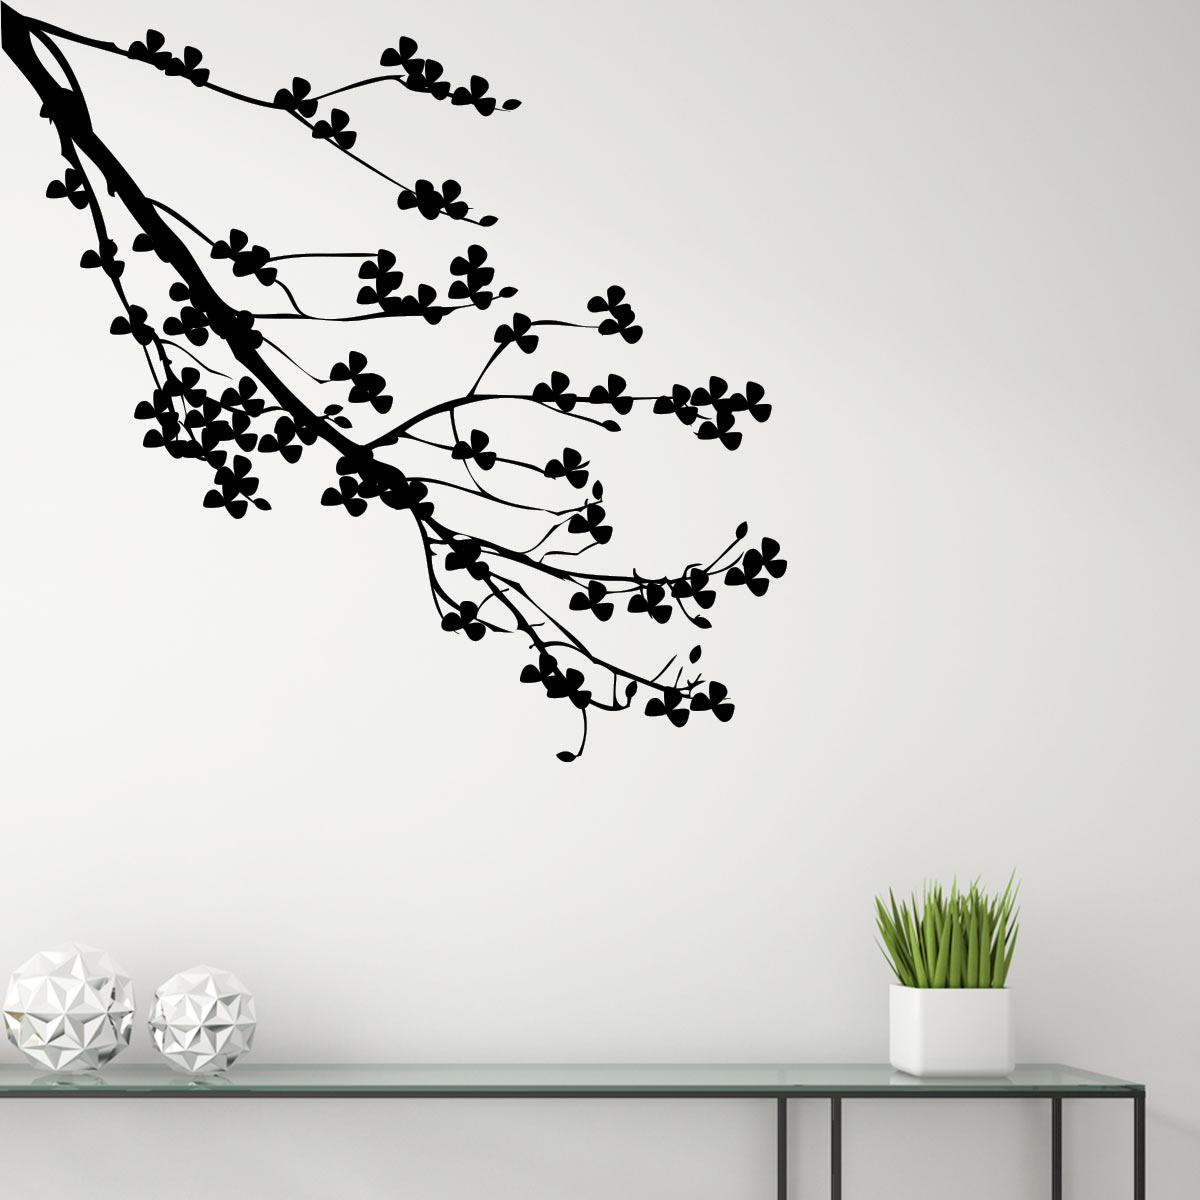 sticker branche d 39 arbre fleuri stickers nature arbres ambiance sticker. Black Bedroom Furniture Sets. Home Design Ideas